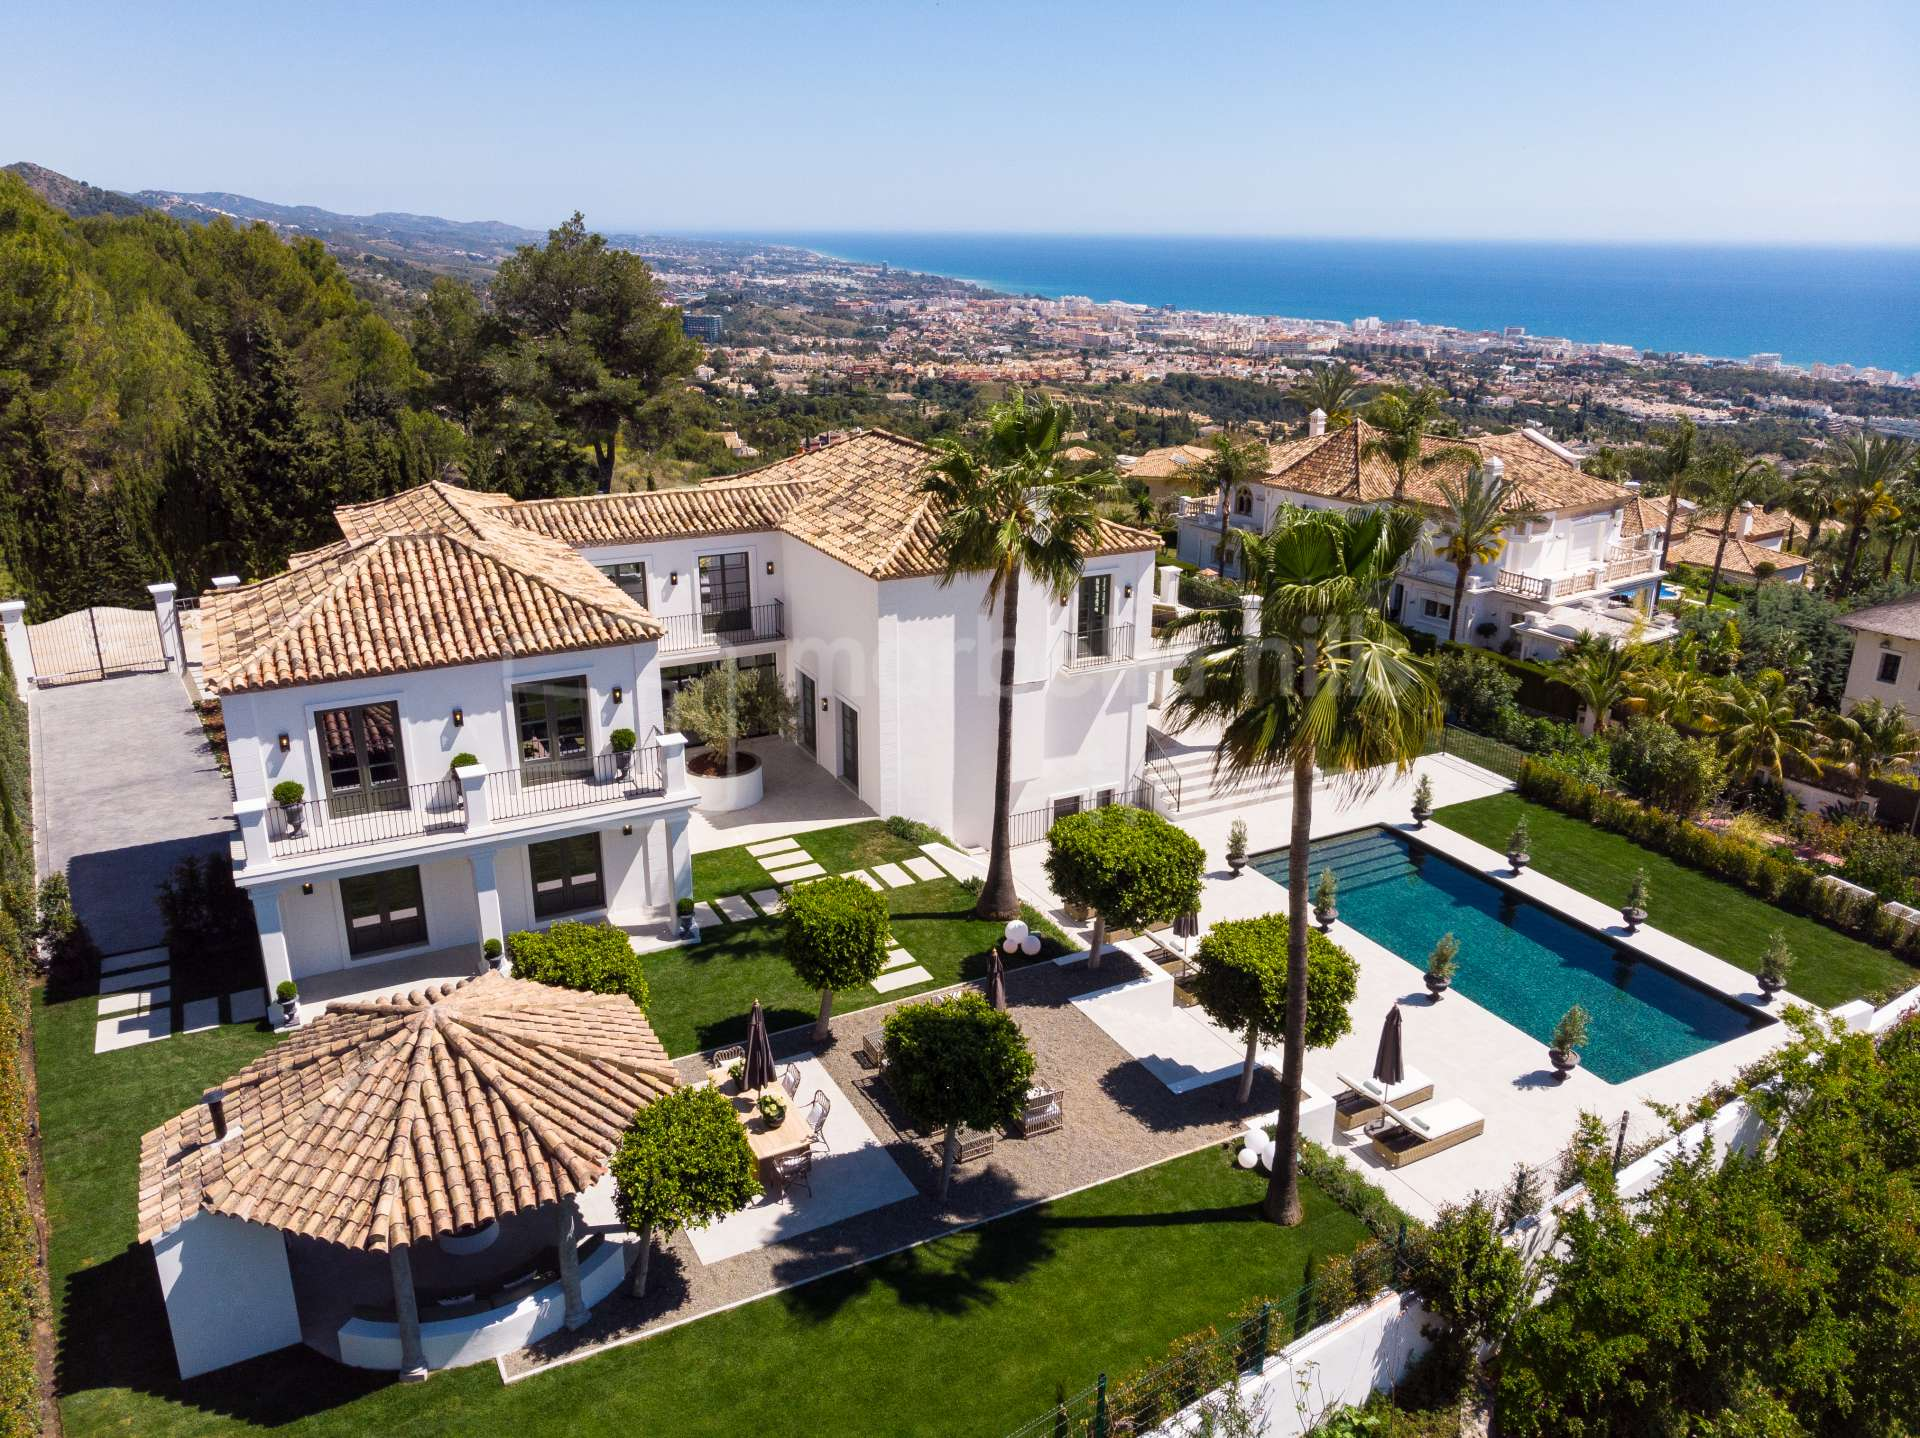 Unique fully renovated 6 bedroom villa in Sierra Blanca with panoramic views